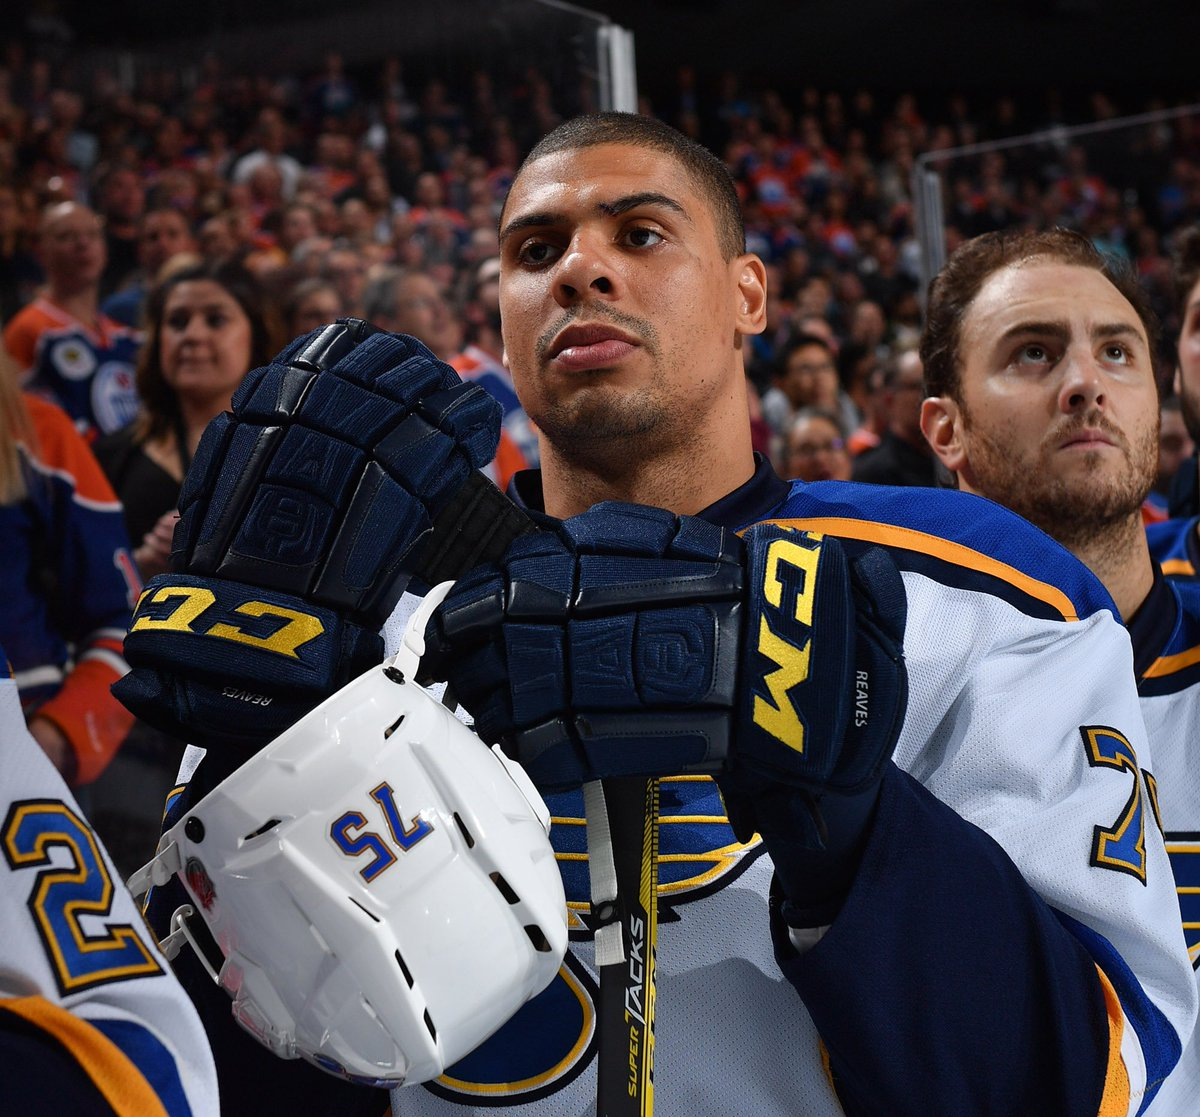 St louis blues on twitter coming to tonights game join us in st louis blues on twitter coming to tonights game join us in bud light zone after tonights game to meet rreaves75 win prizes at the budlight m4hsunfo